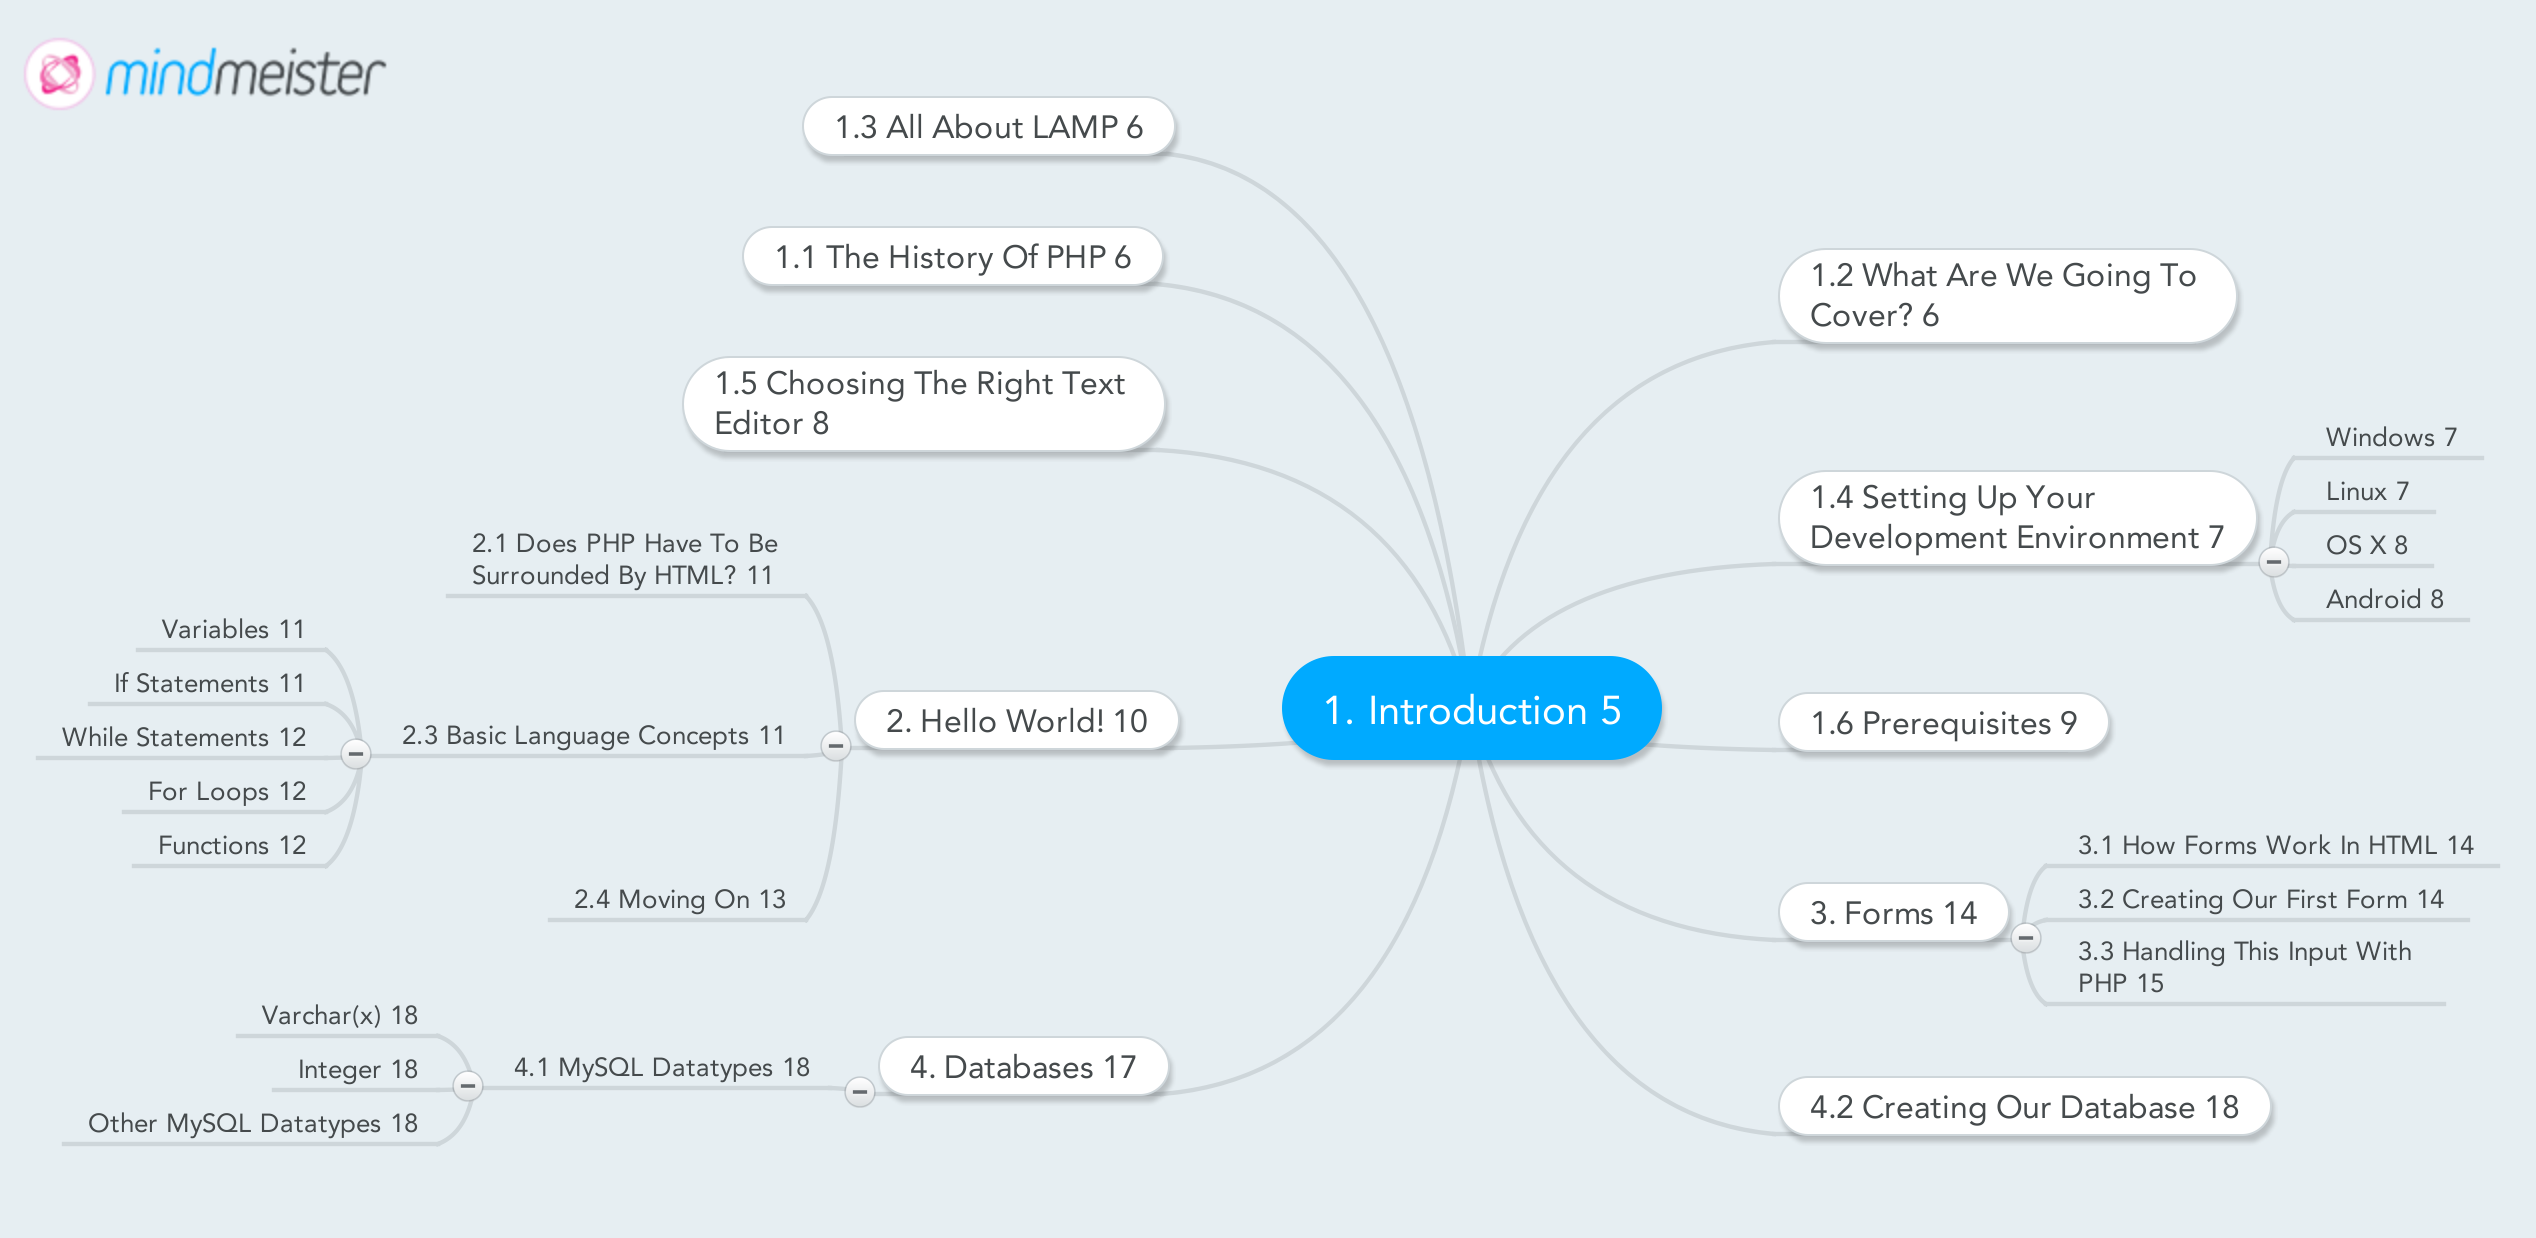 Google Docs Concept Map.The Mind Mapping Org Blog This Blog Is About Software For Visual